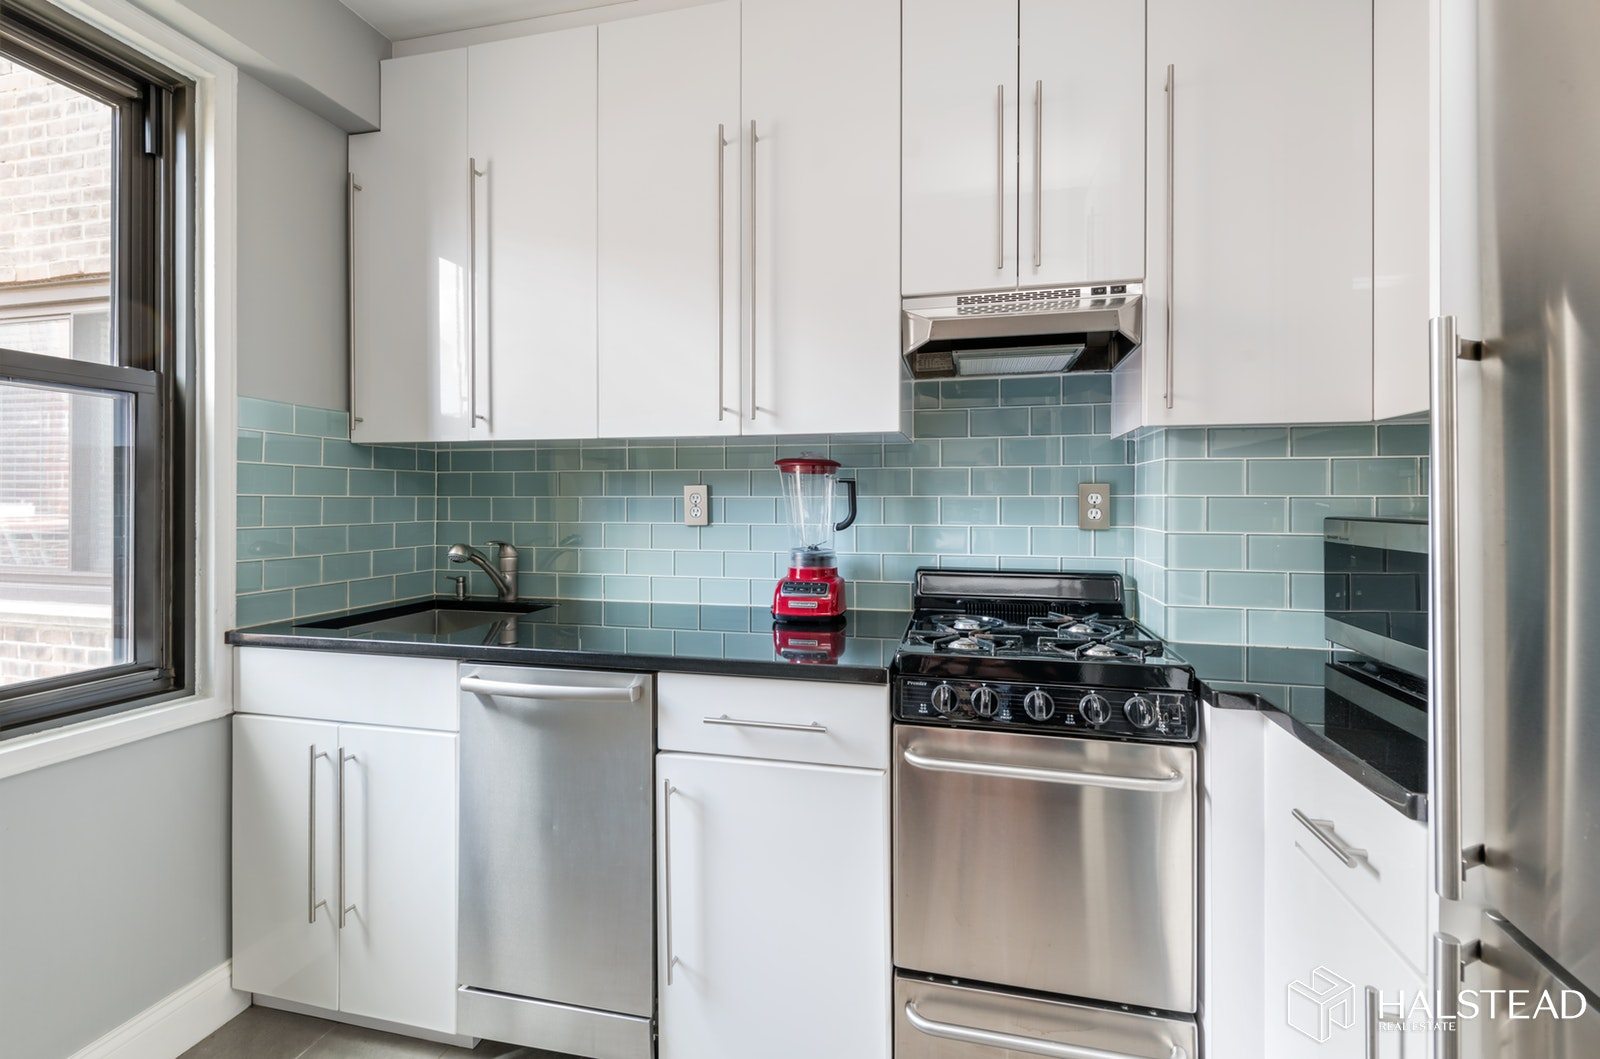 201 West 21st Street 8k, Chelsea, NYC, 10011, $486,000, Sold Property, Halstead Real Estate, Photo 4